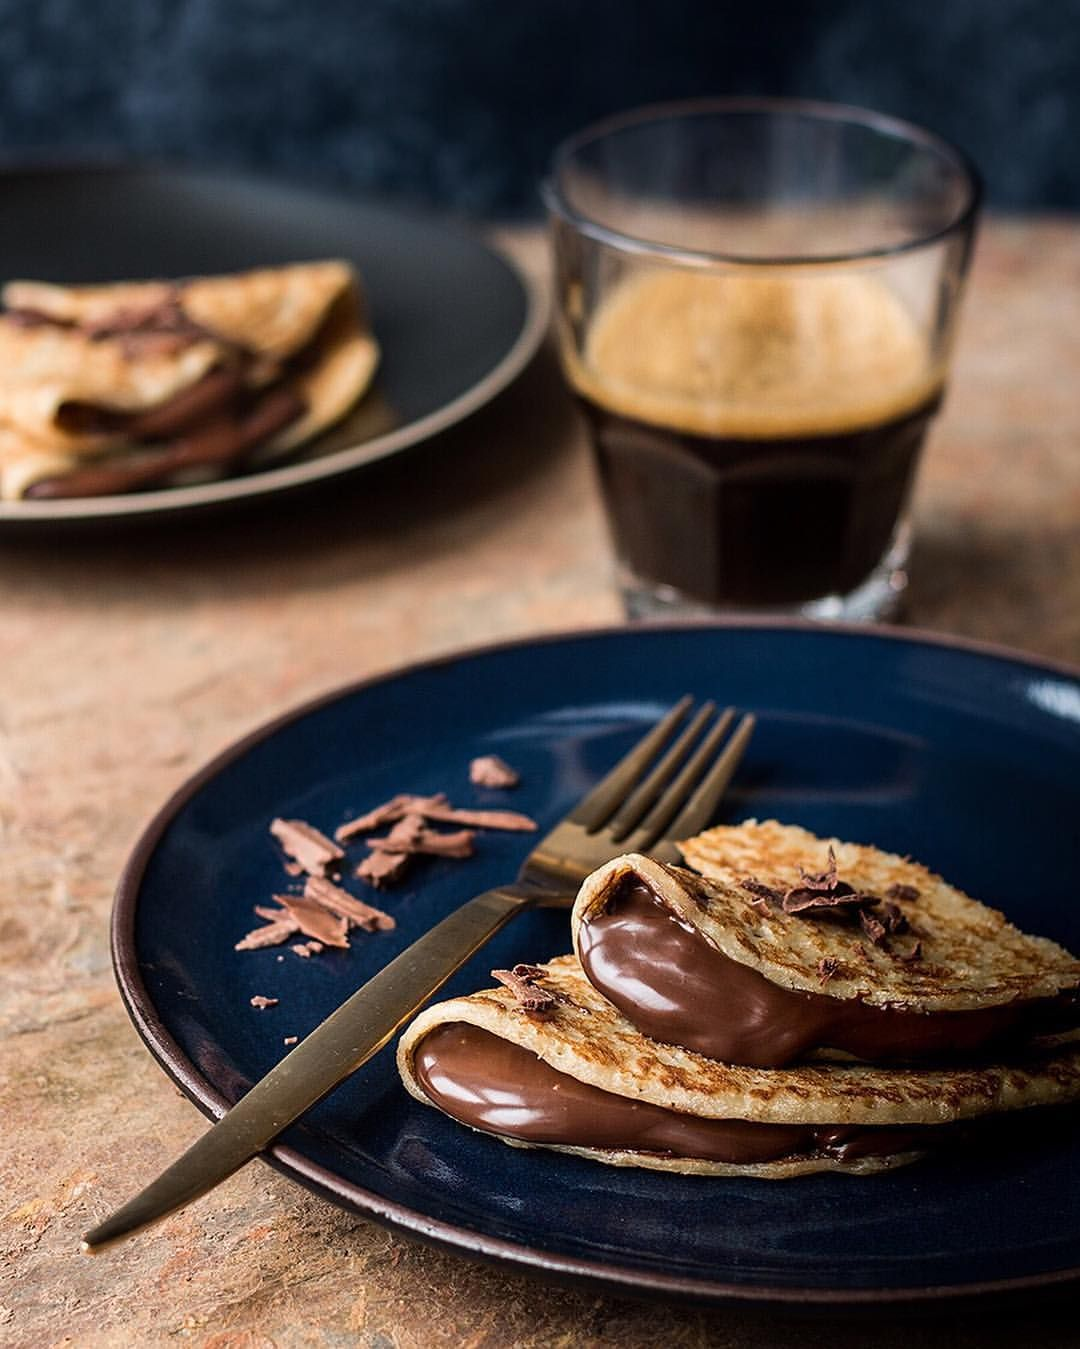 Chocolate crepes by Laura Domingo